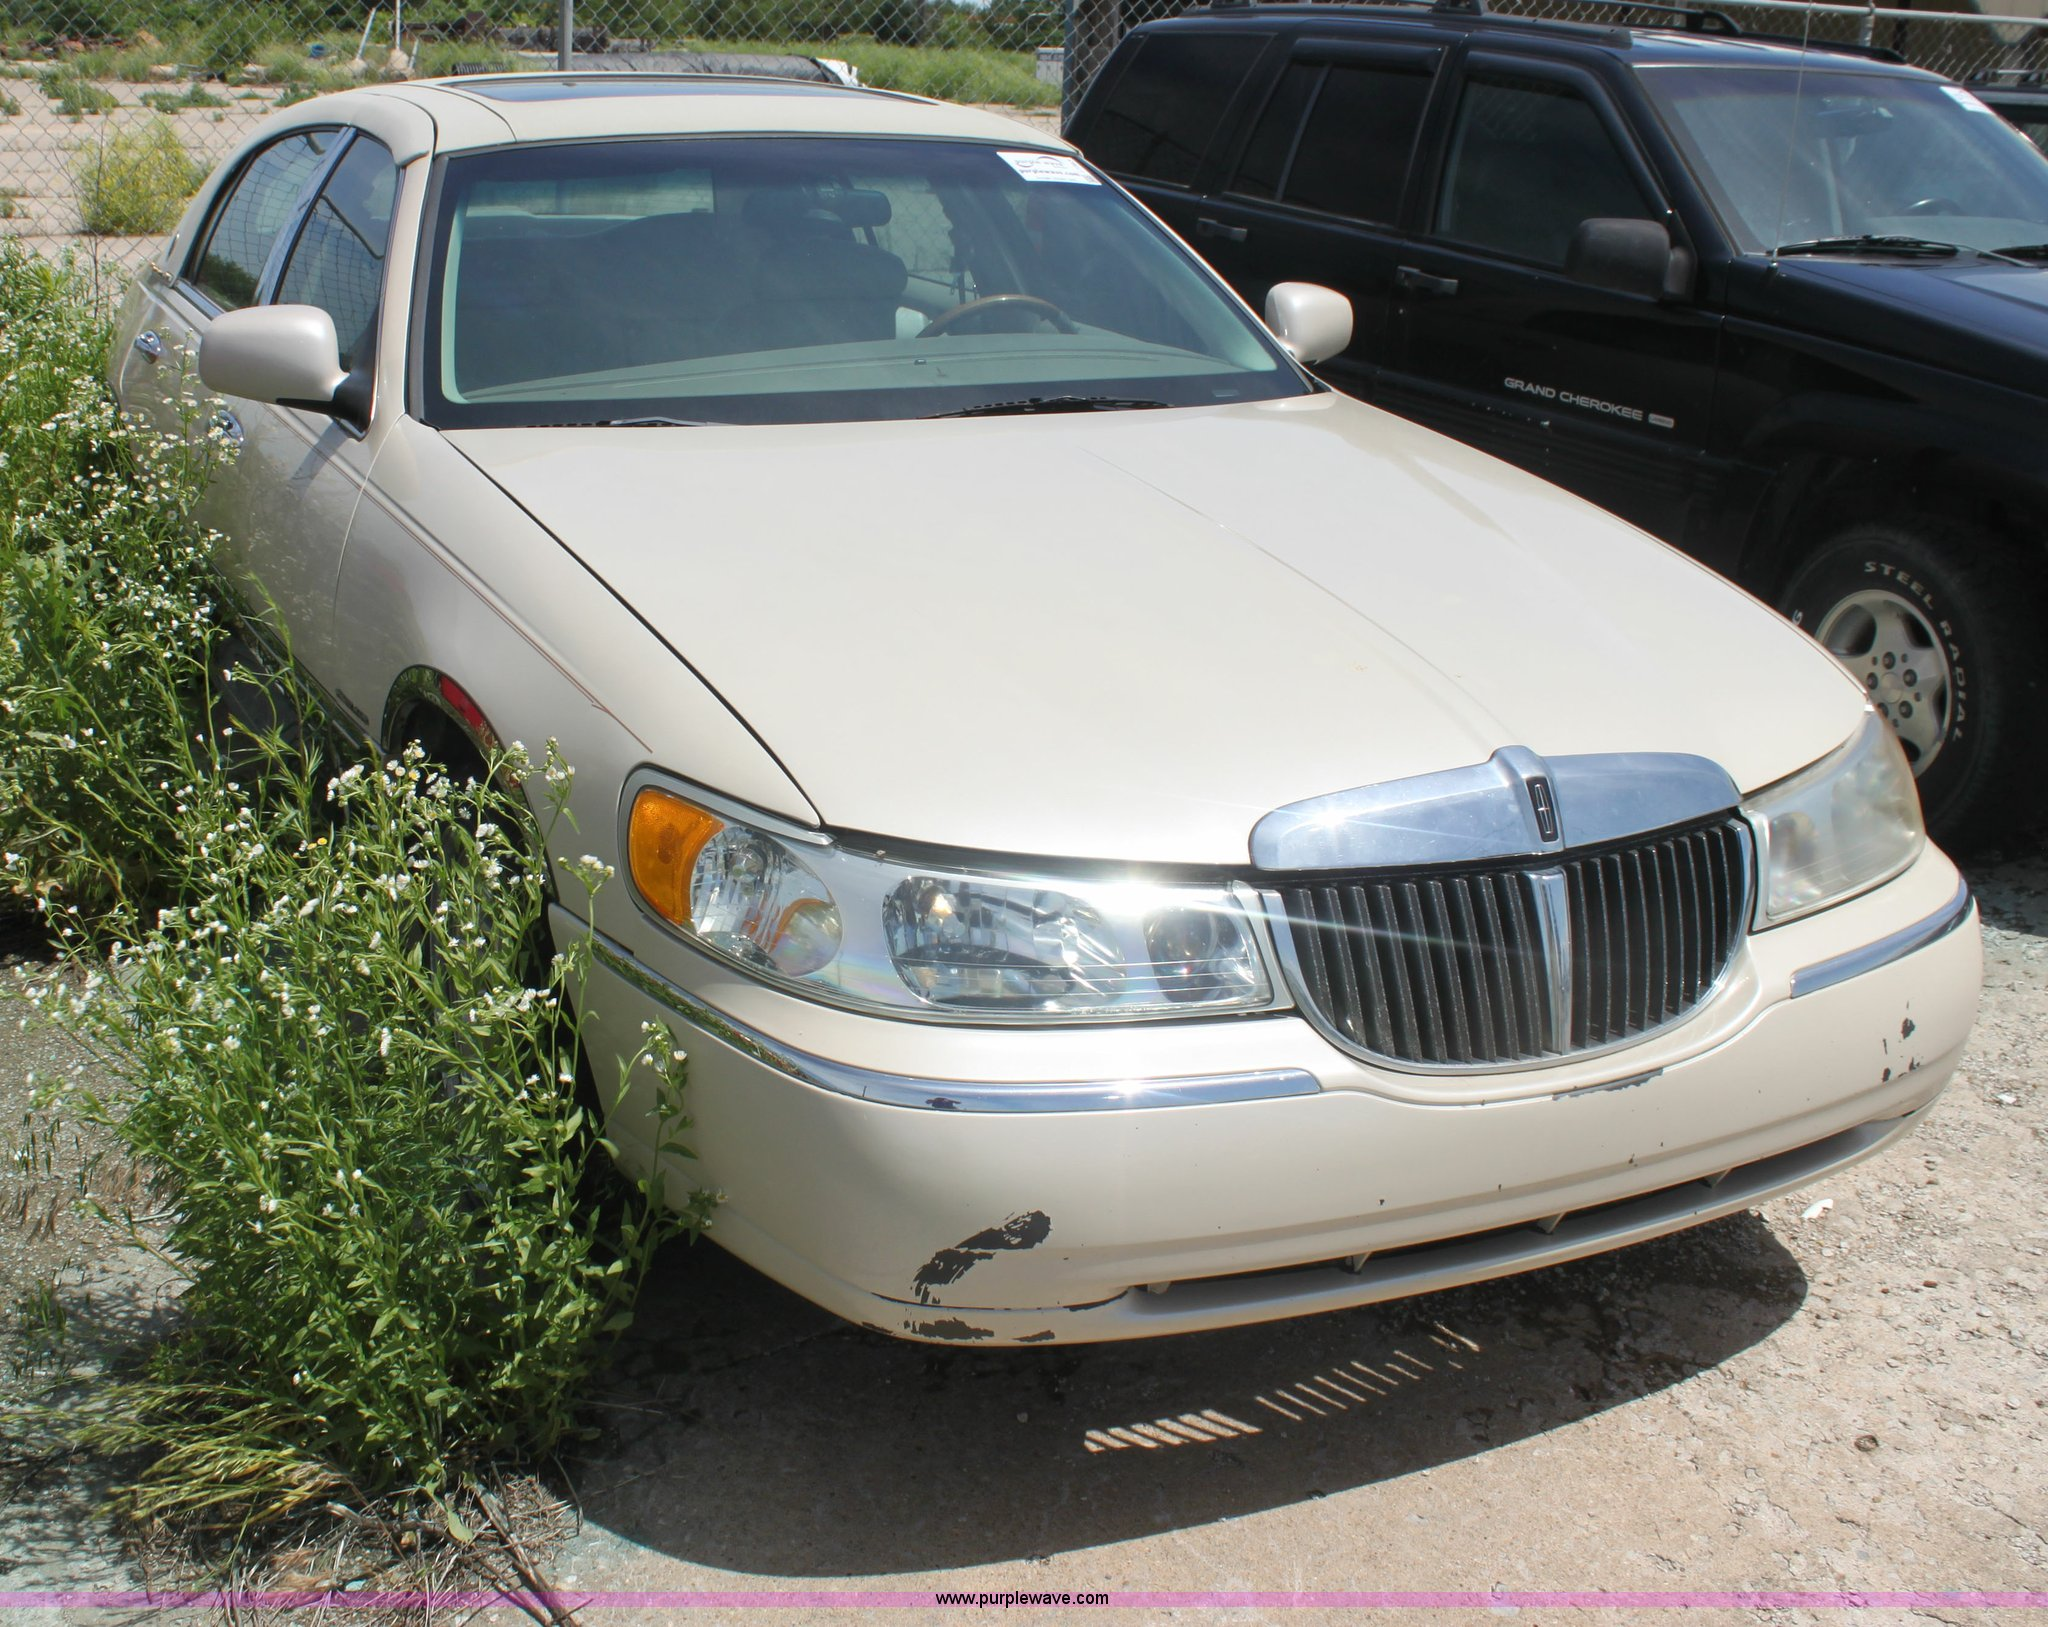 2000 Lincoln Town Car Cartier Diamond Edition Item I7363